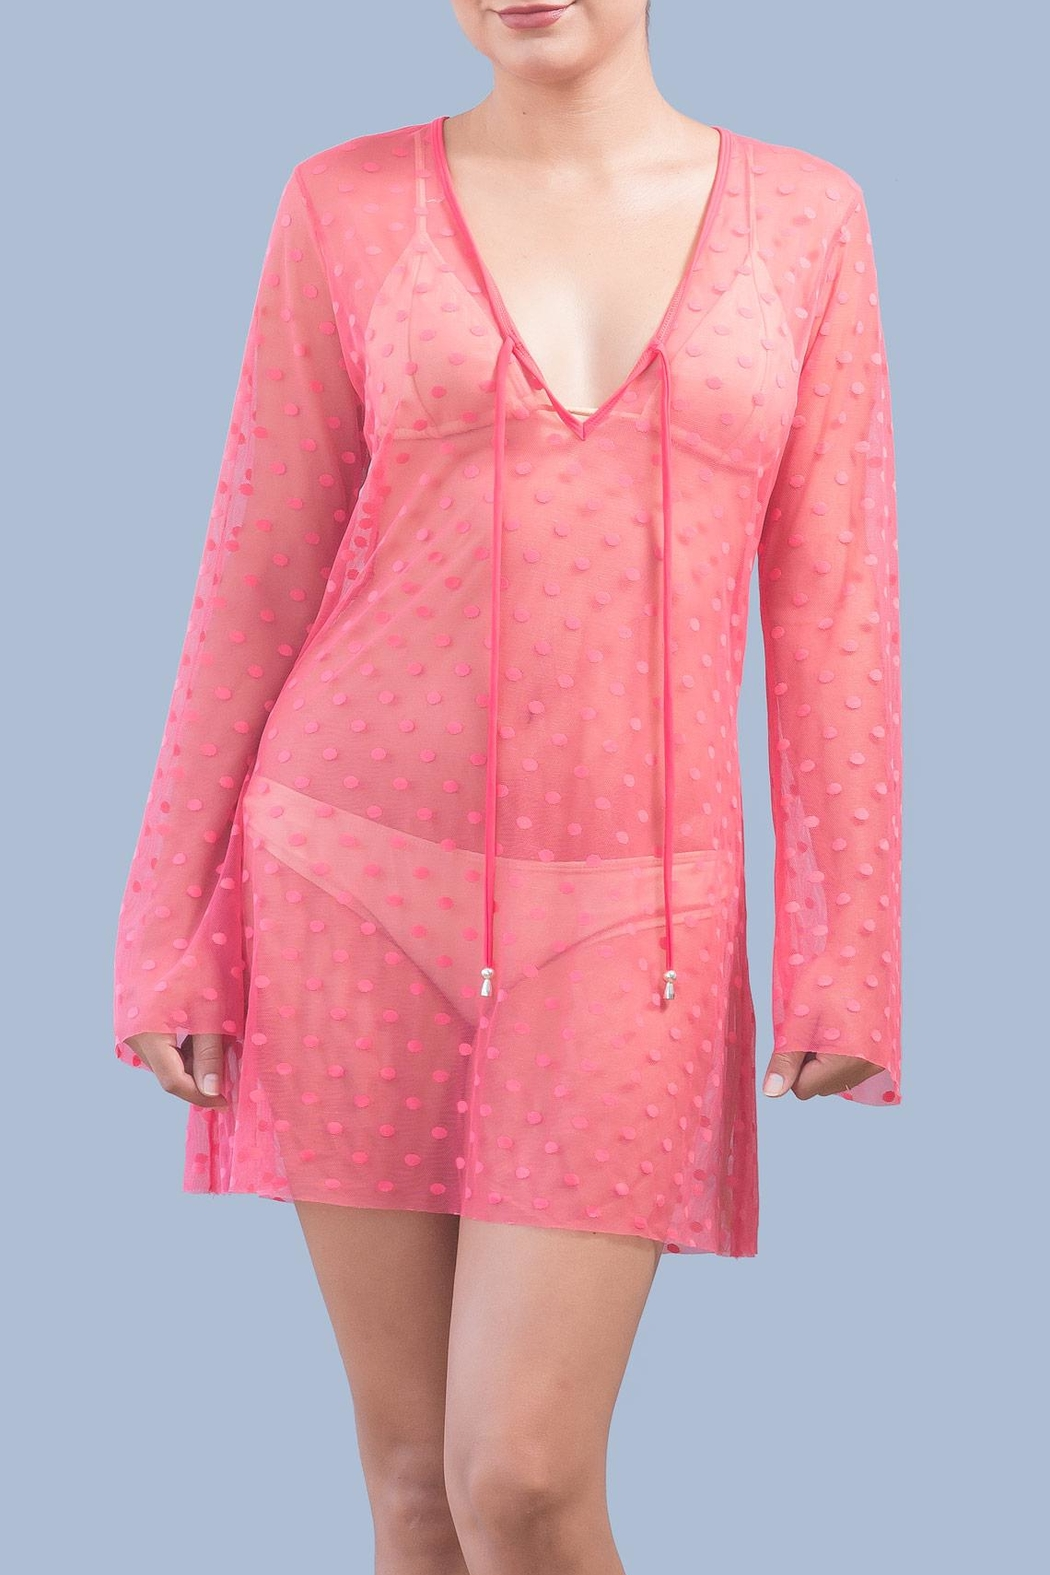 Myskova Heidi Coral Cover Up - Main Image